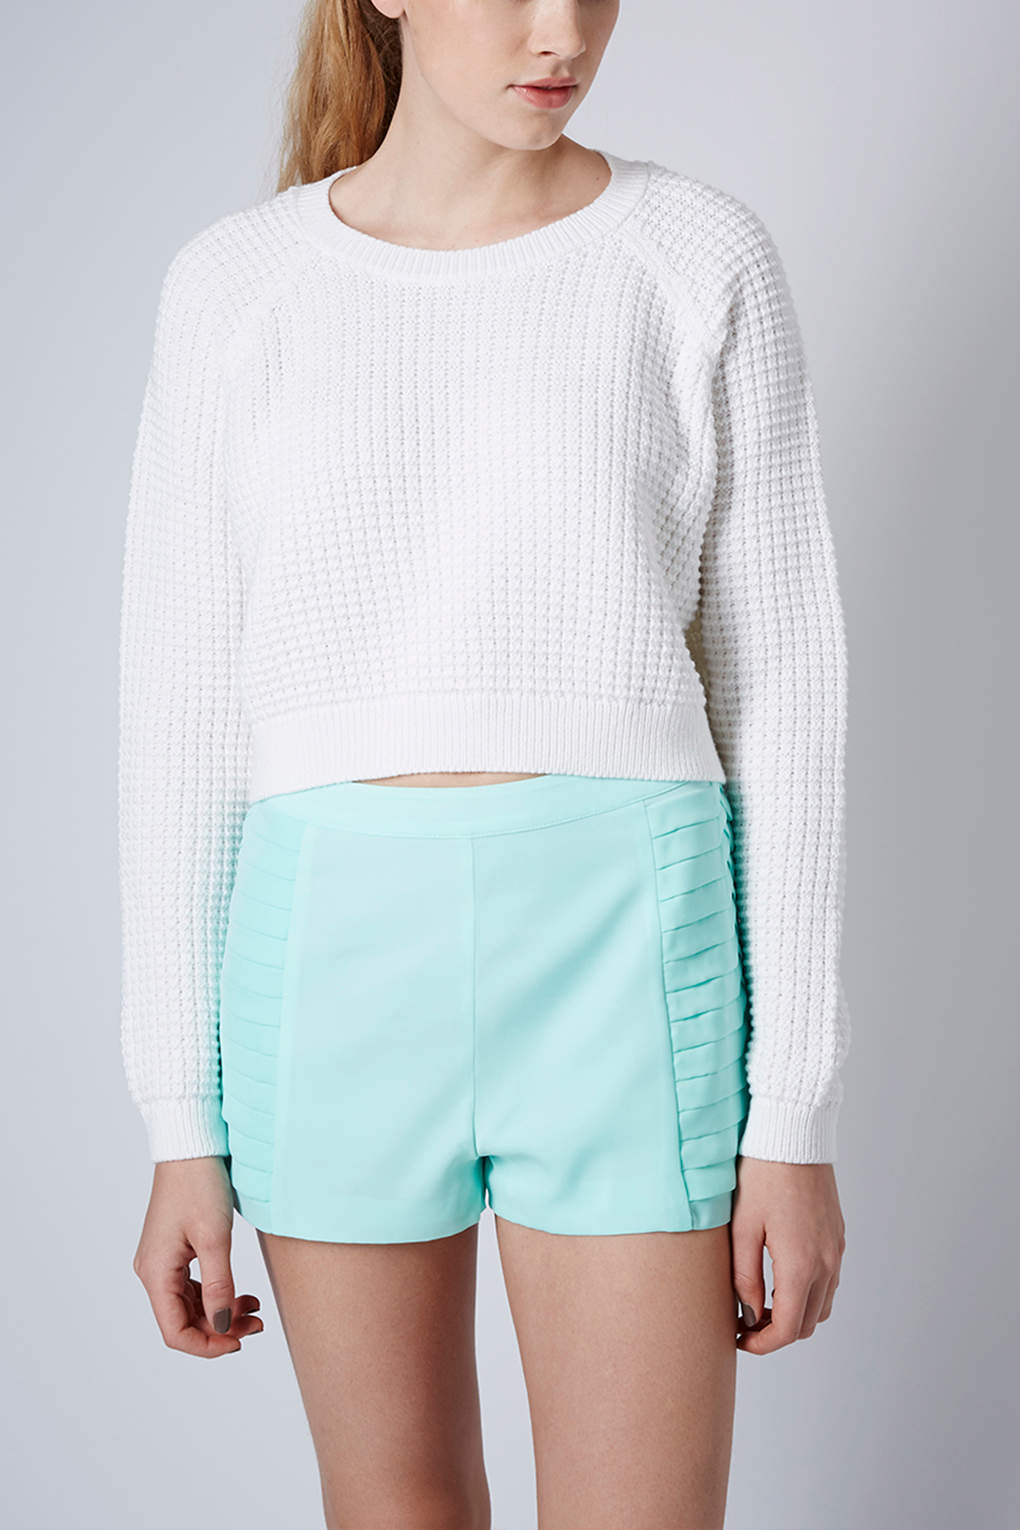 Topshop Fisherman Cropped Sweater in White | Lyst